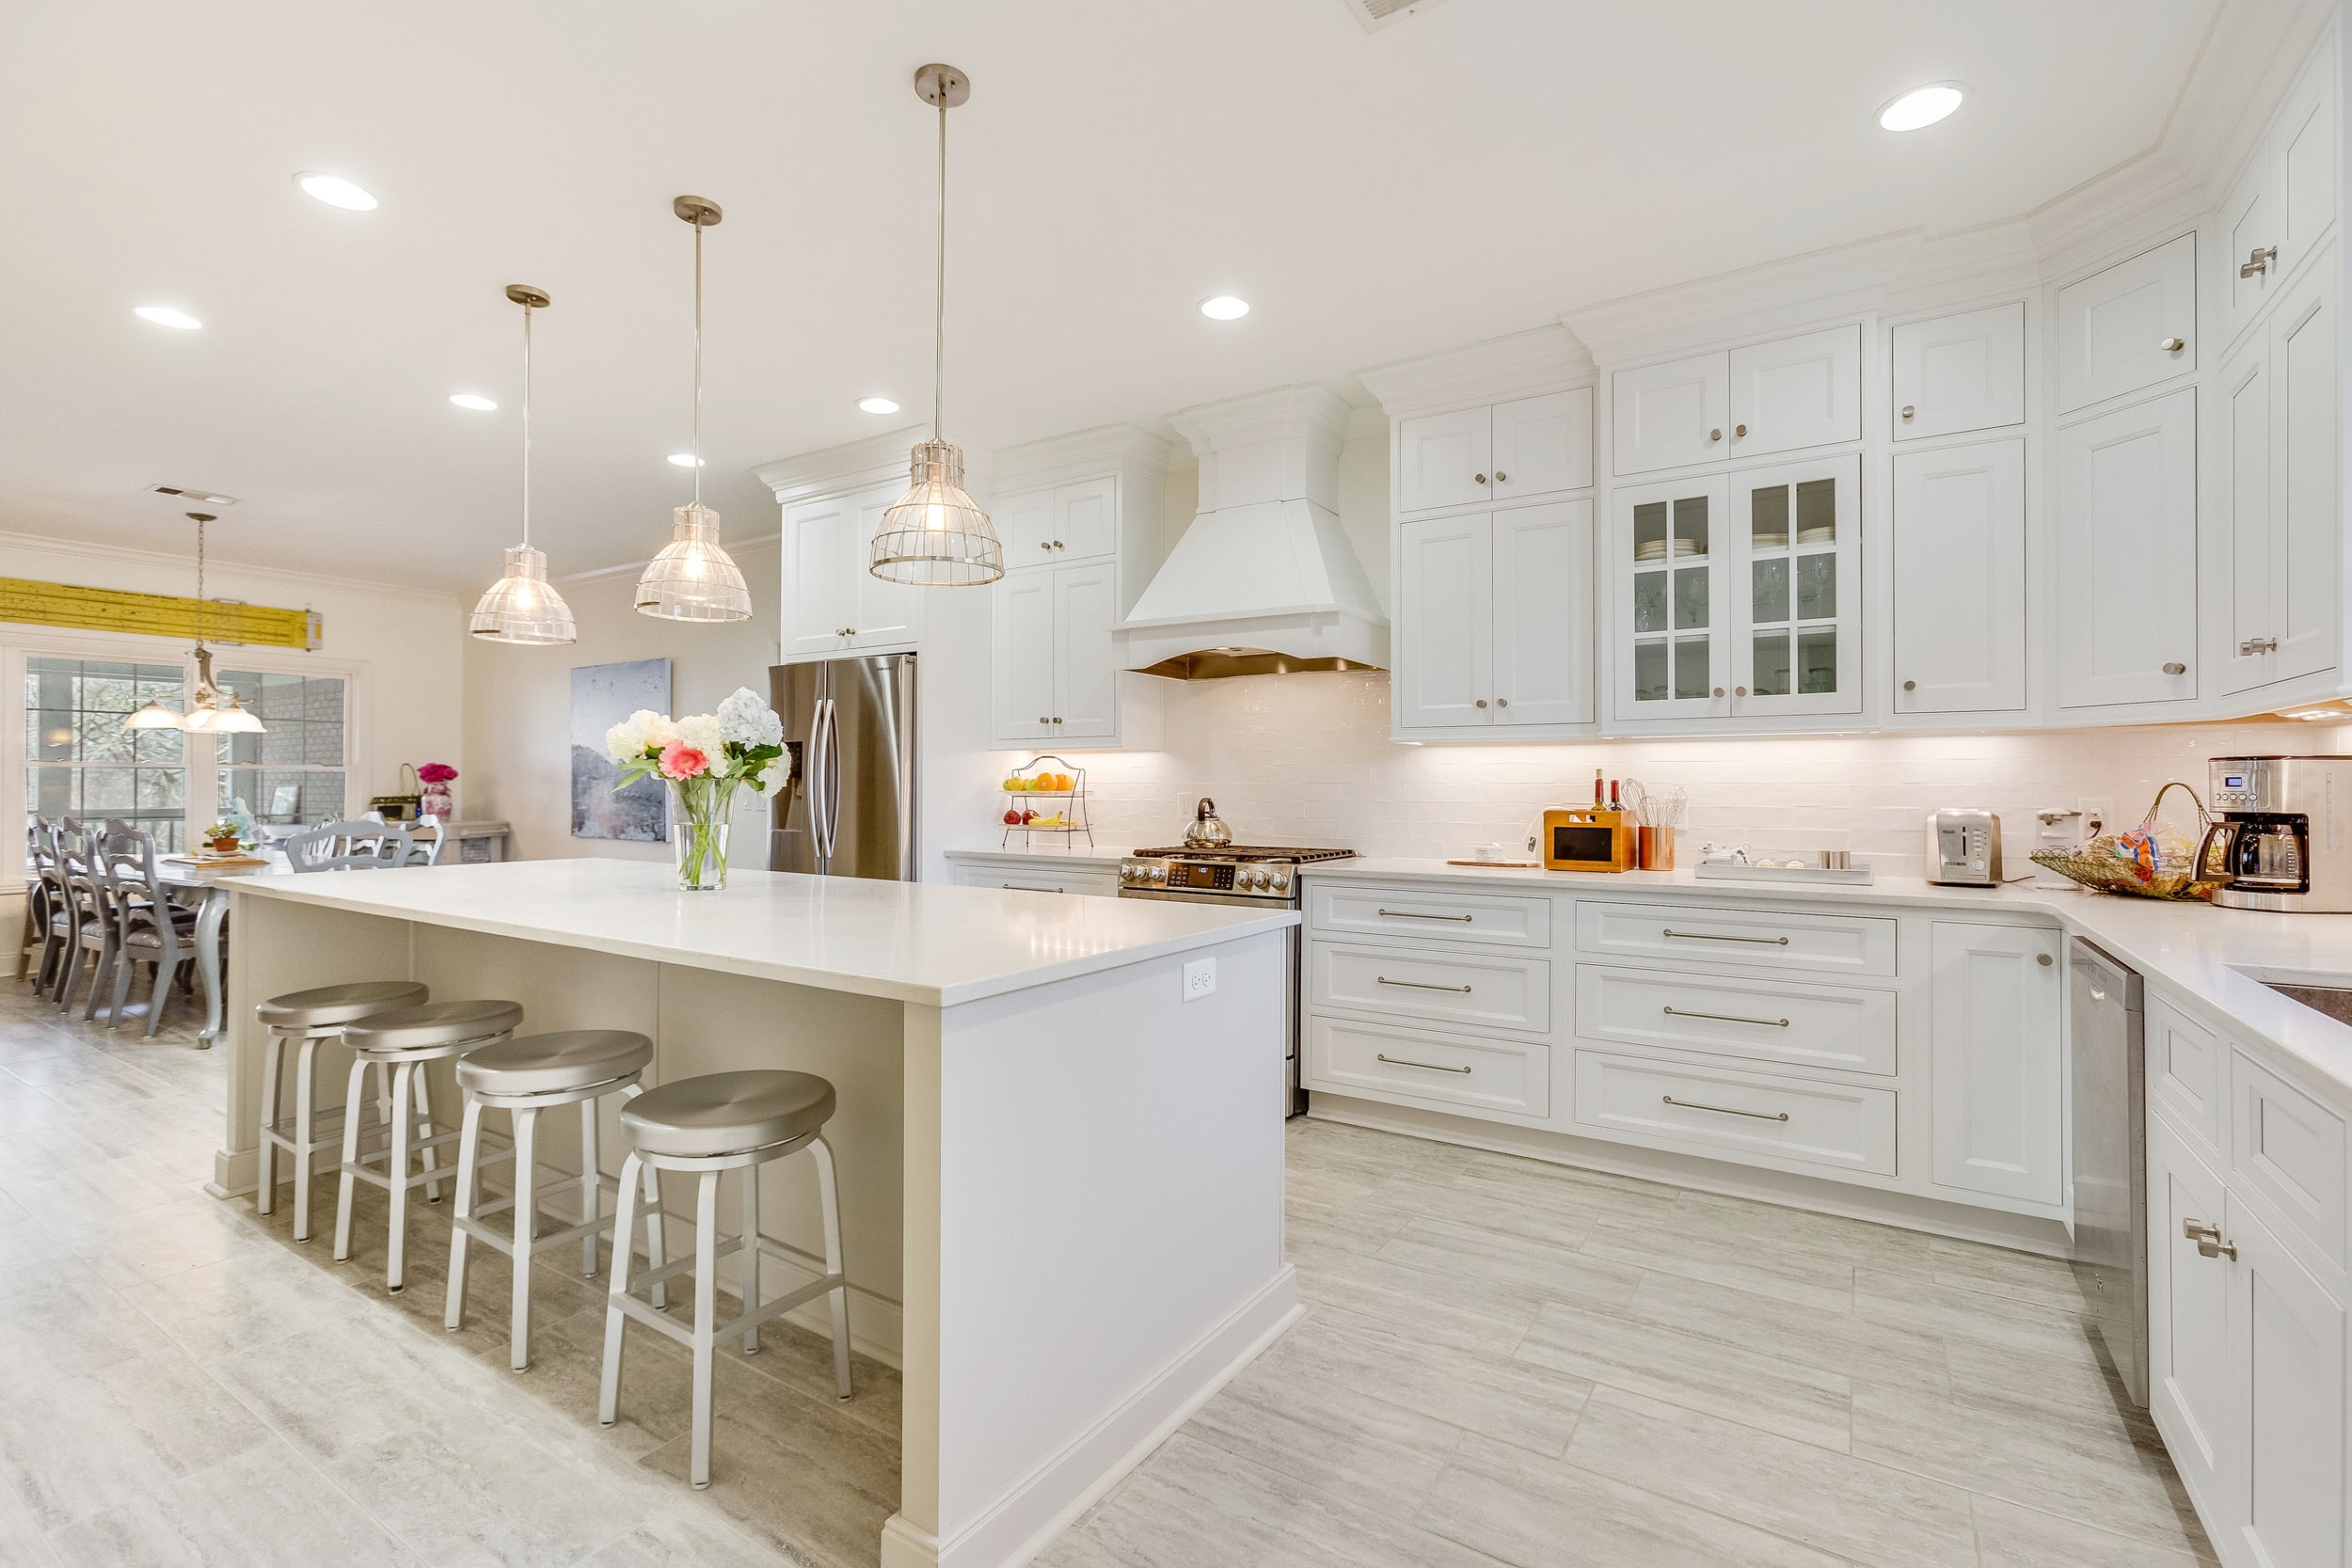 Bright and Airy Kitchen Remodel — Toulmin Cabinetry & Design